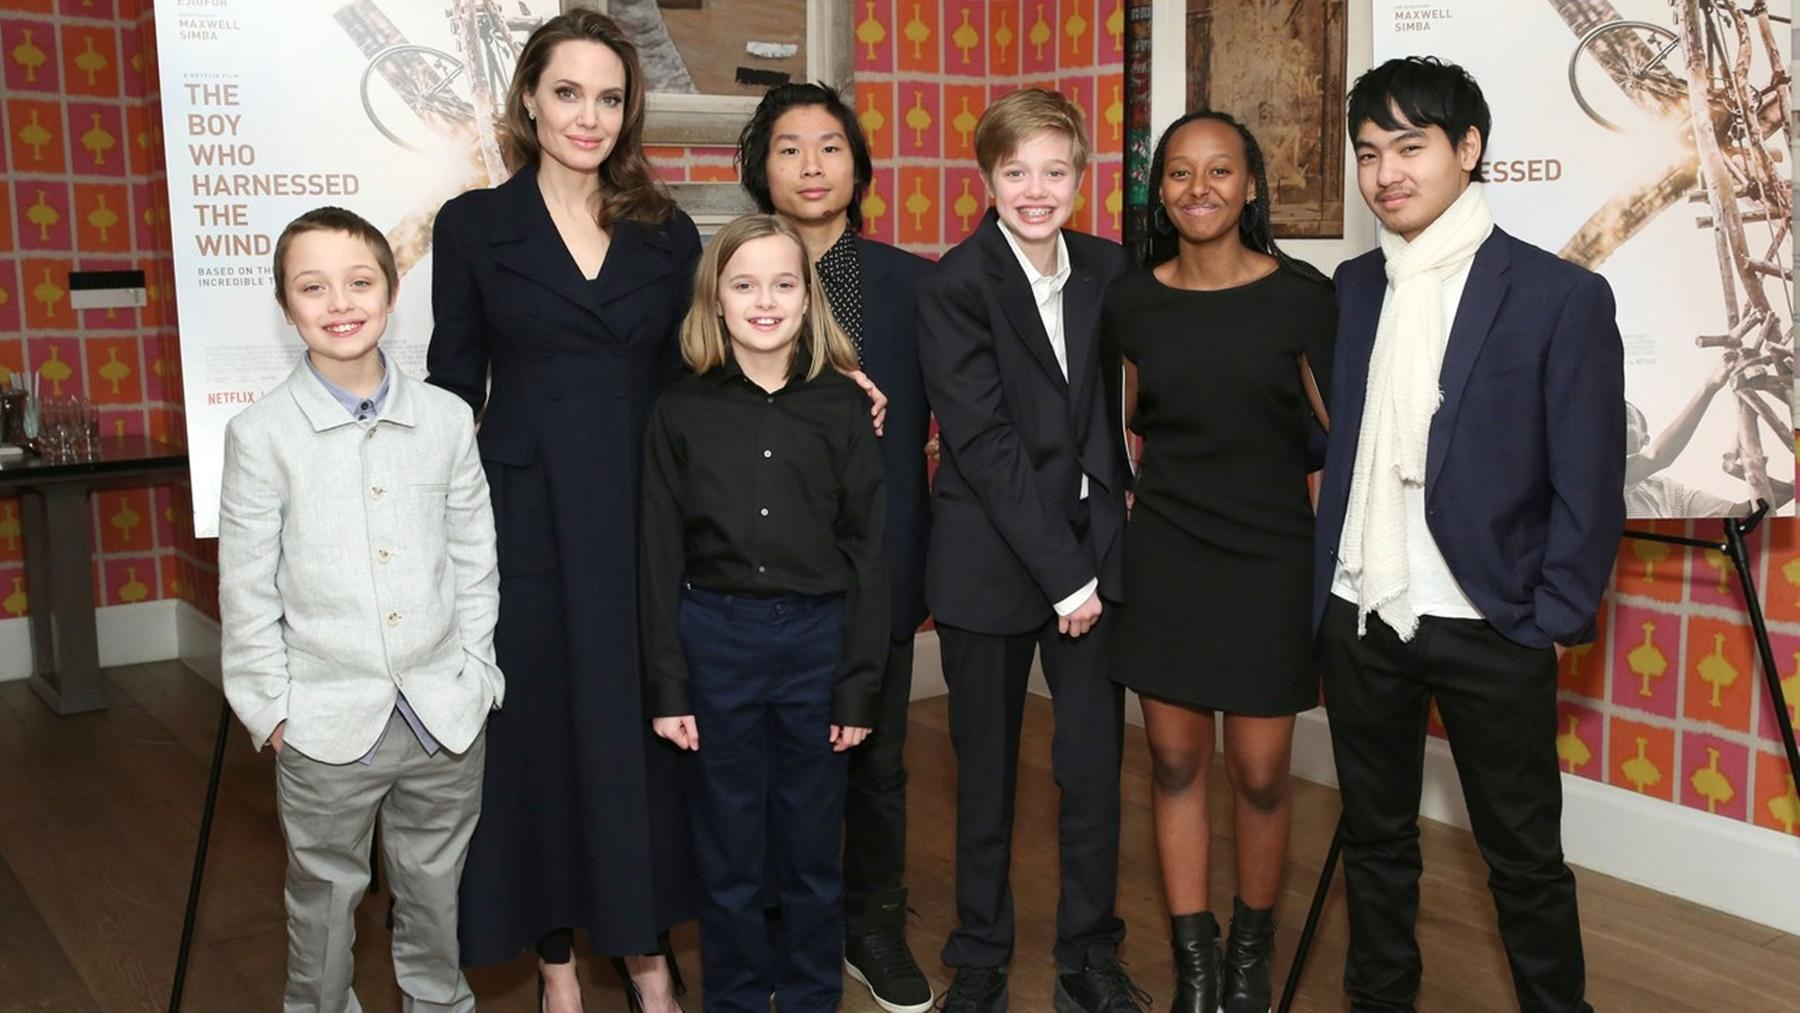 Angelina Jolie And Her Seven Children Get An Adorable Honorary Family Member -- See The Pictures Melting Hearts